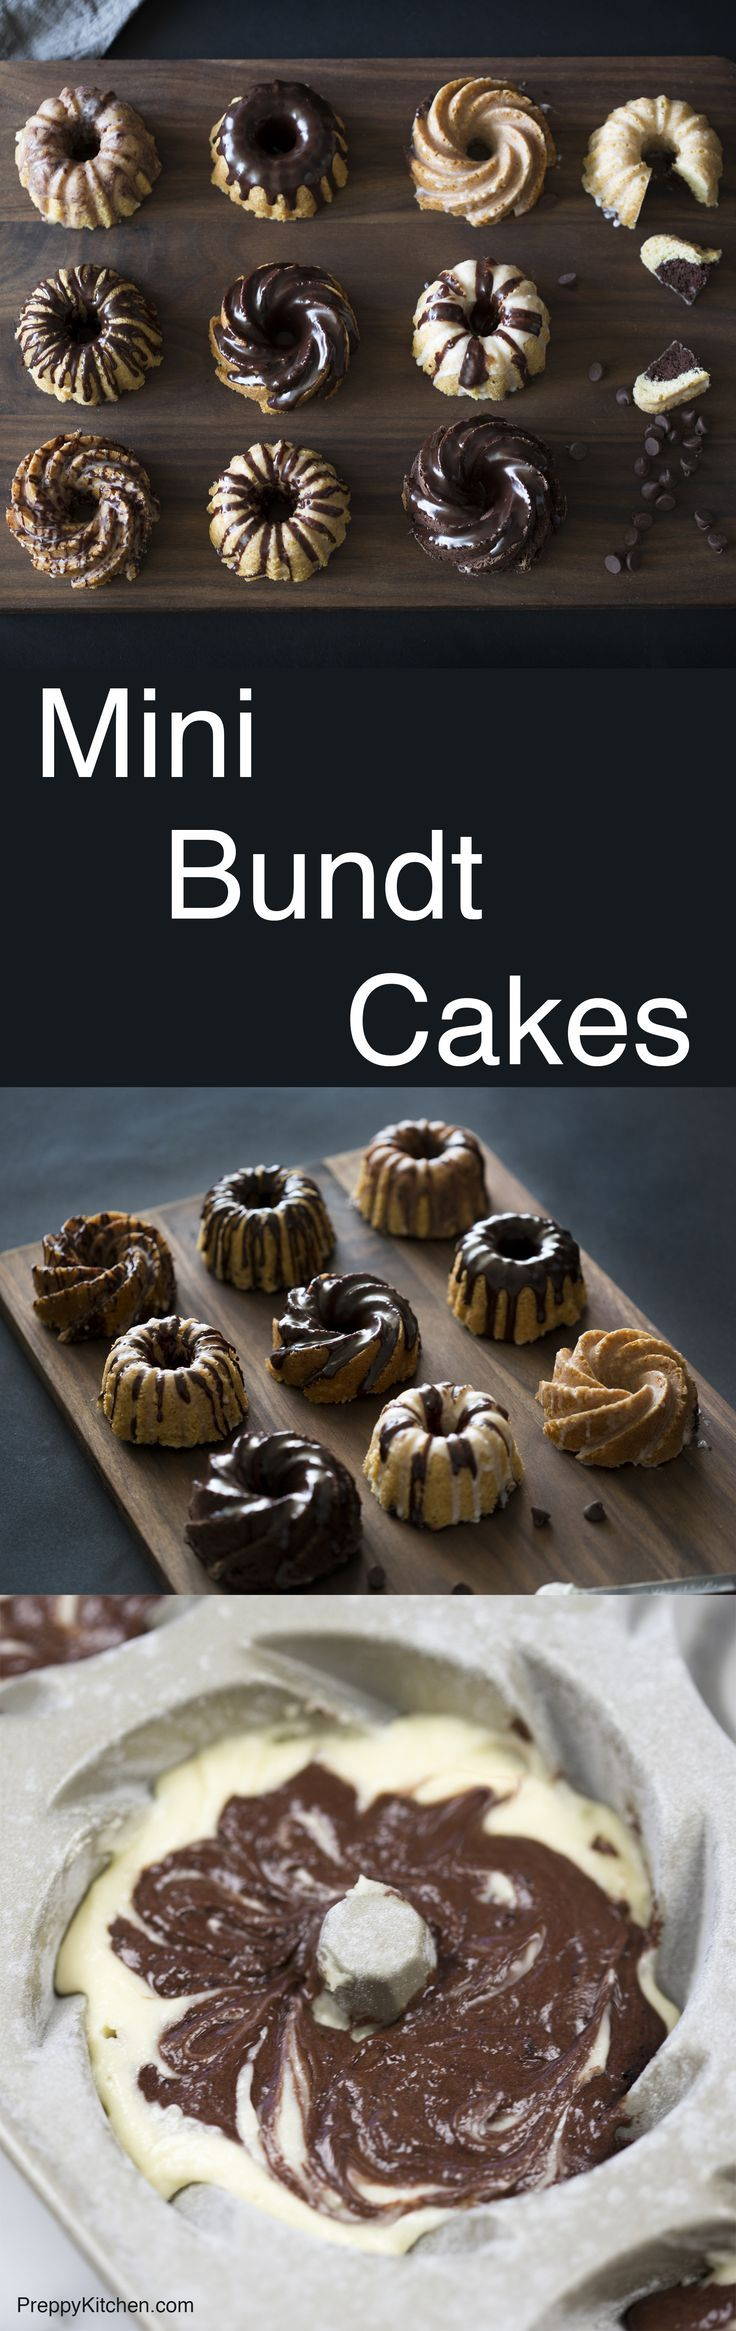 Chocolate and vanilla together at last! These mini bundt cakes can be decorated  a million different ways but they're still delicious. Click over to check out the full recipe.